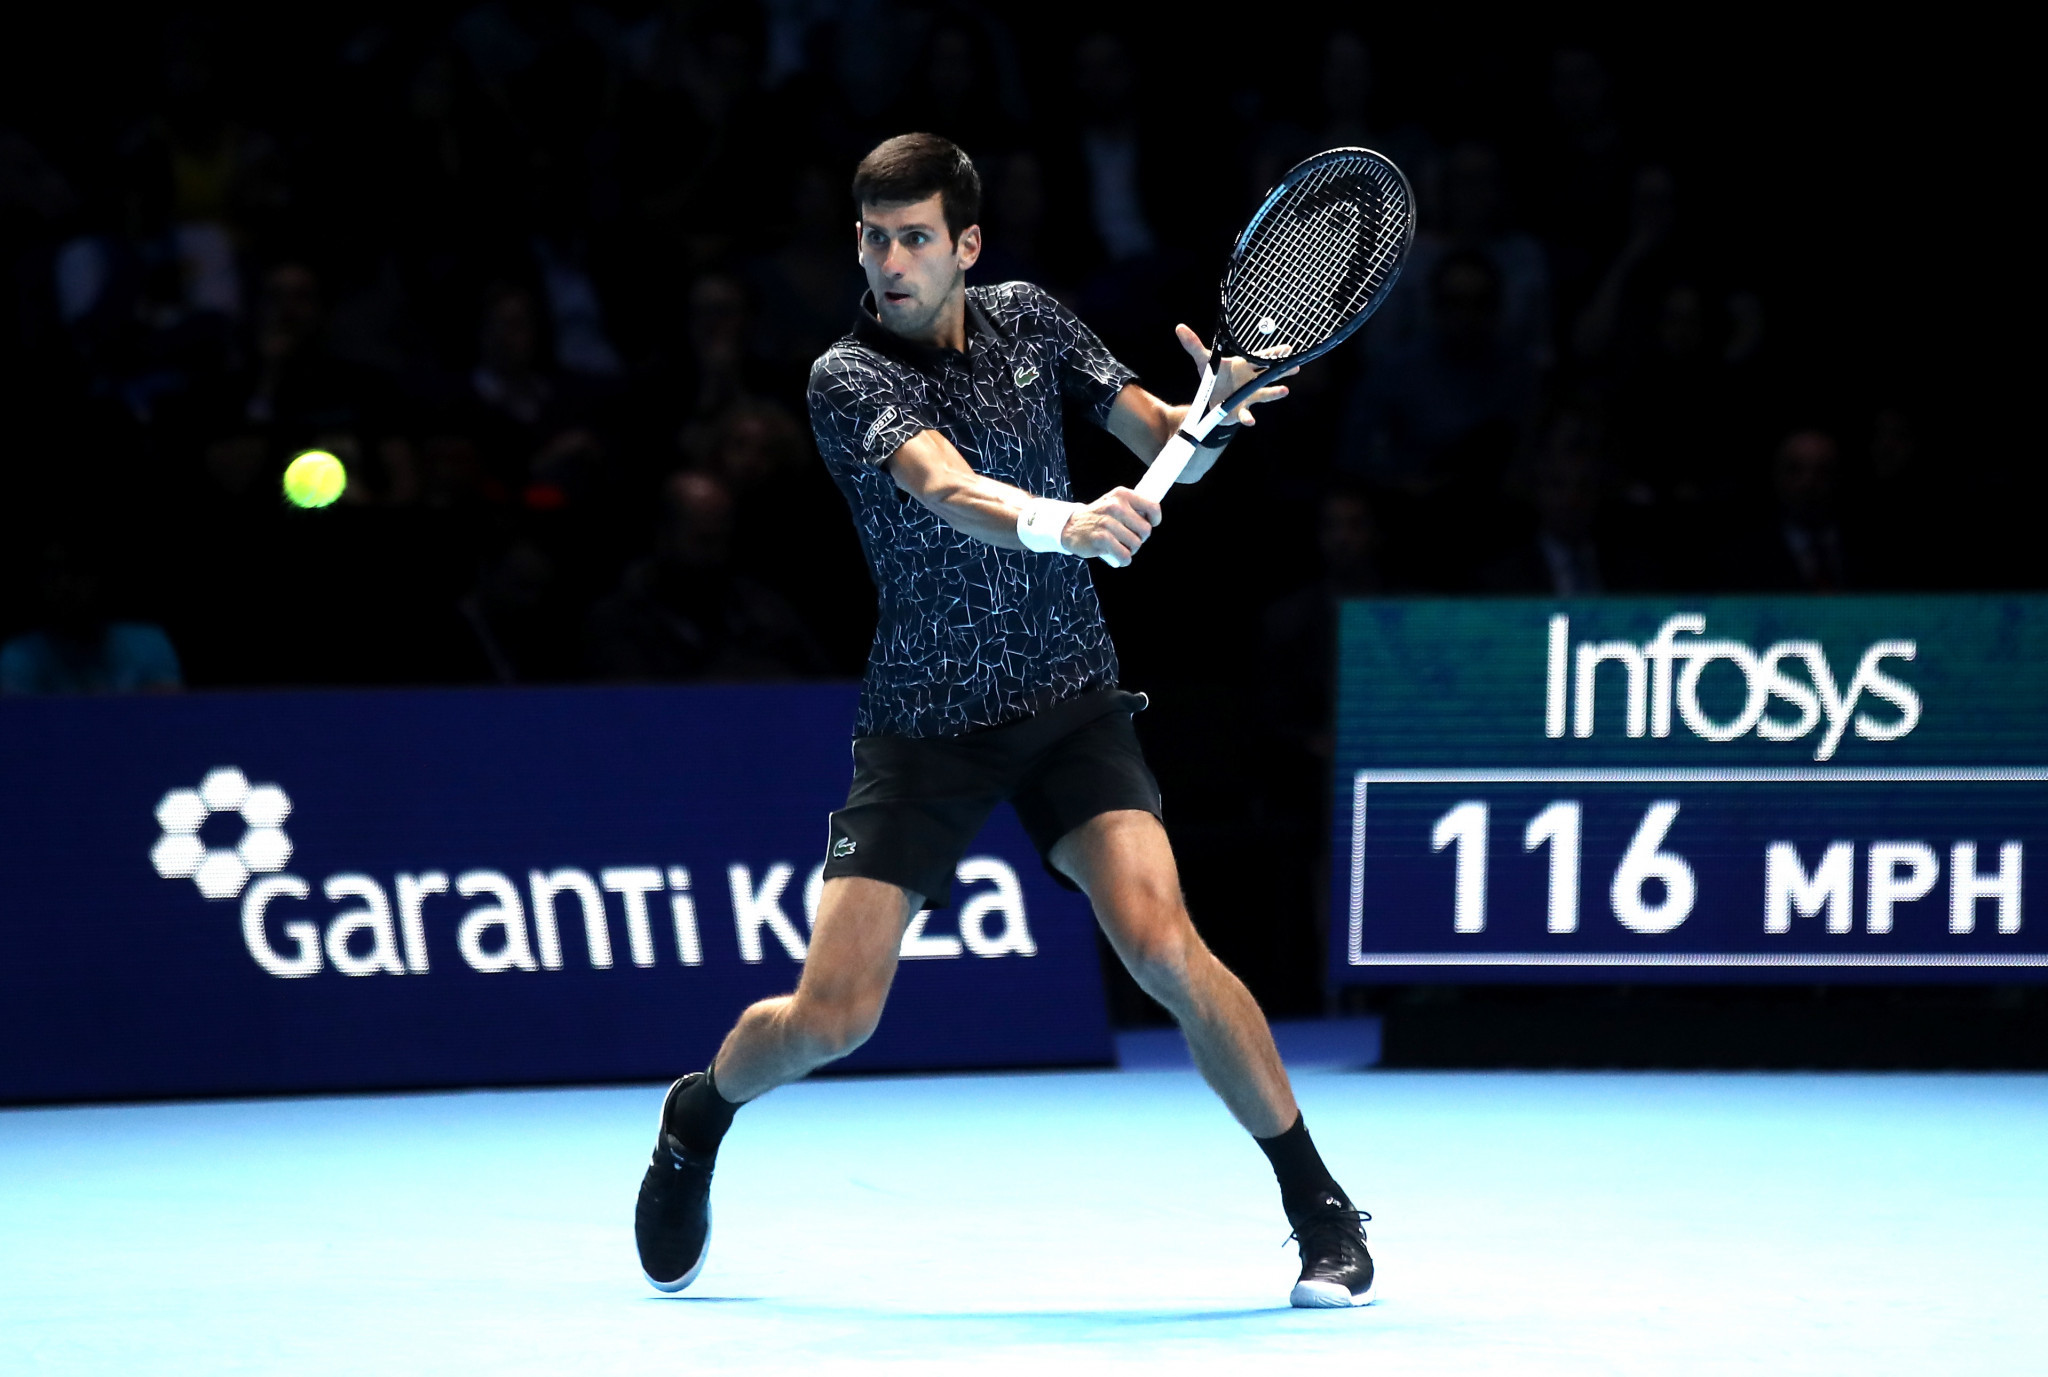 Djokovic walks tall against Isner in his opening ATP Finals group match